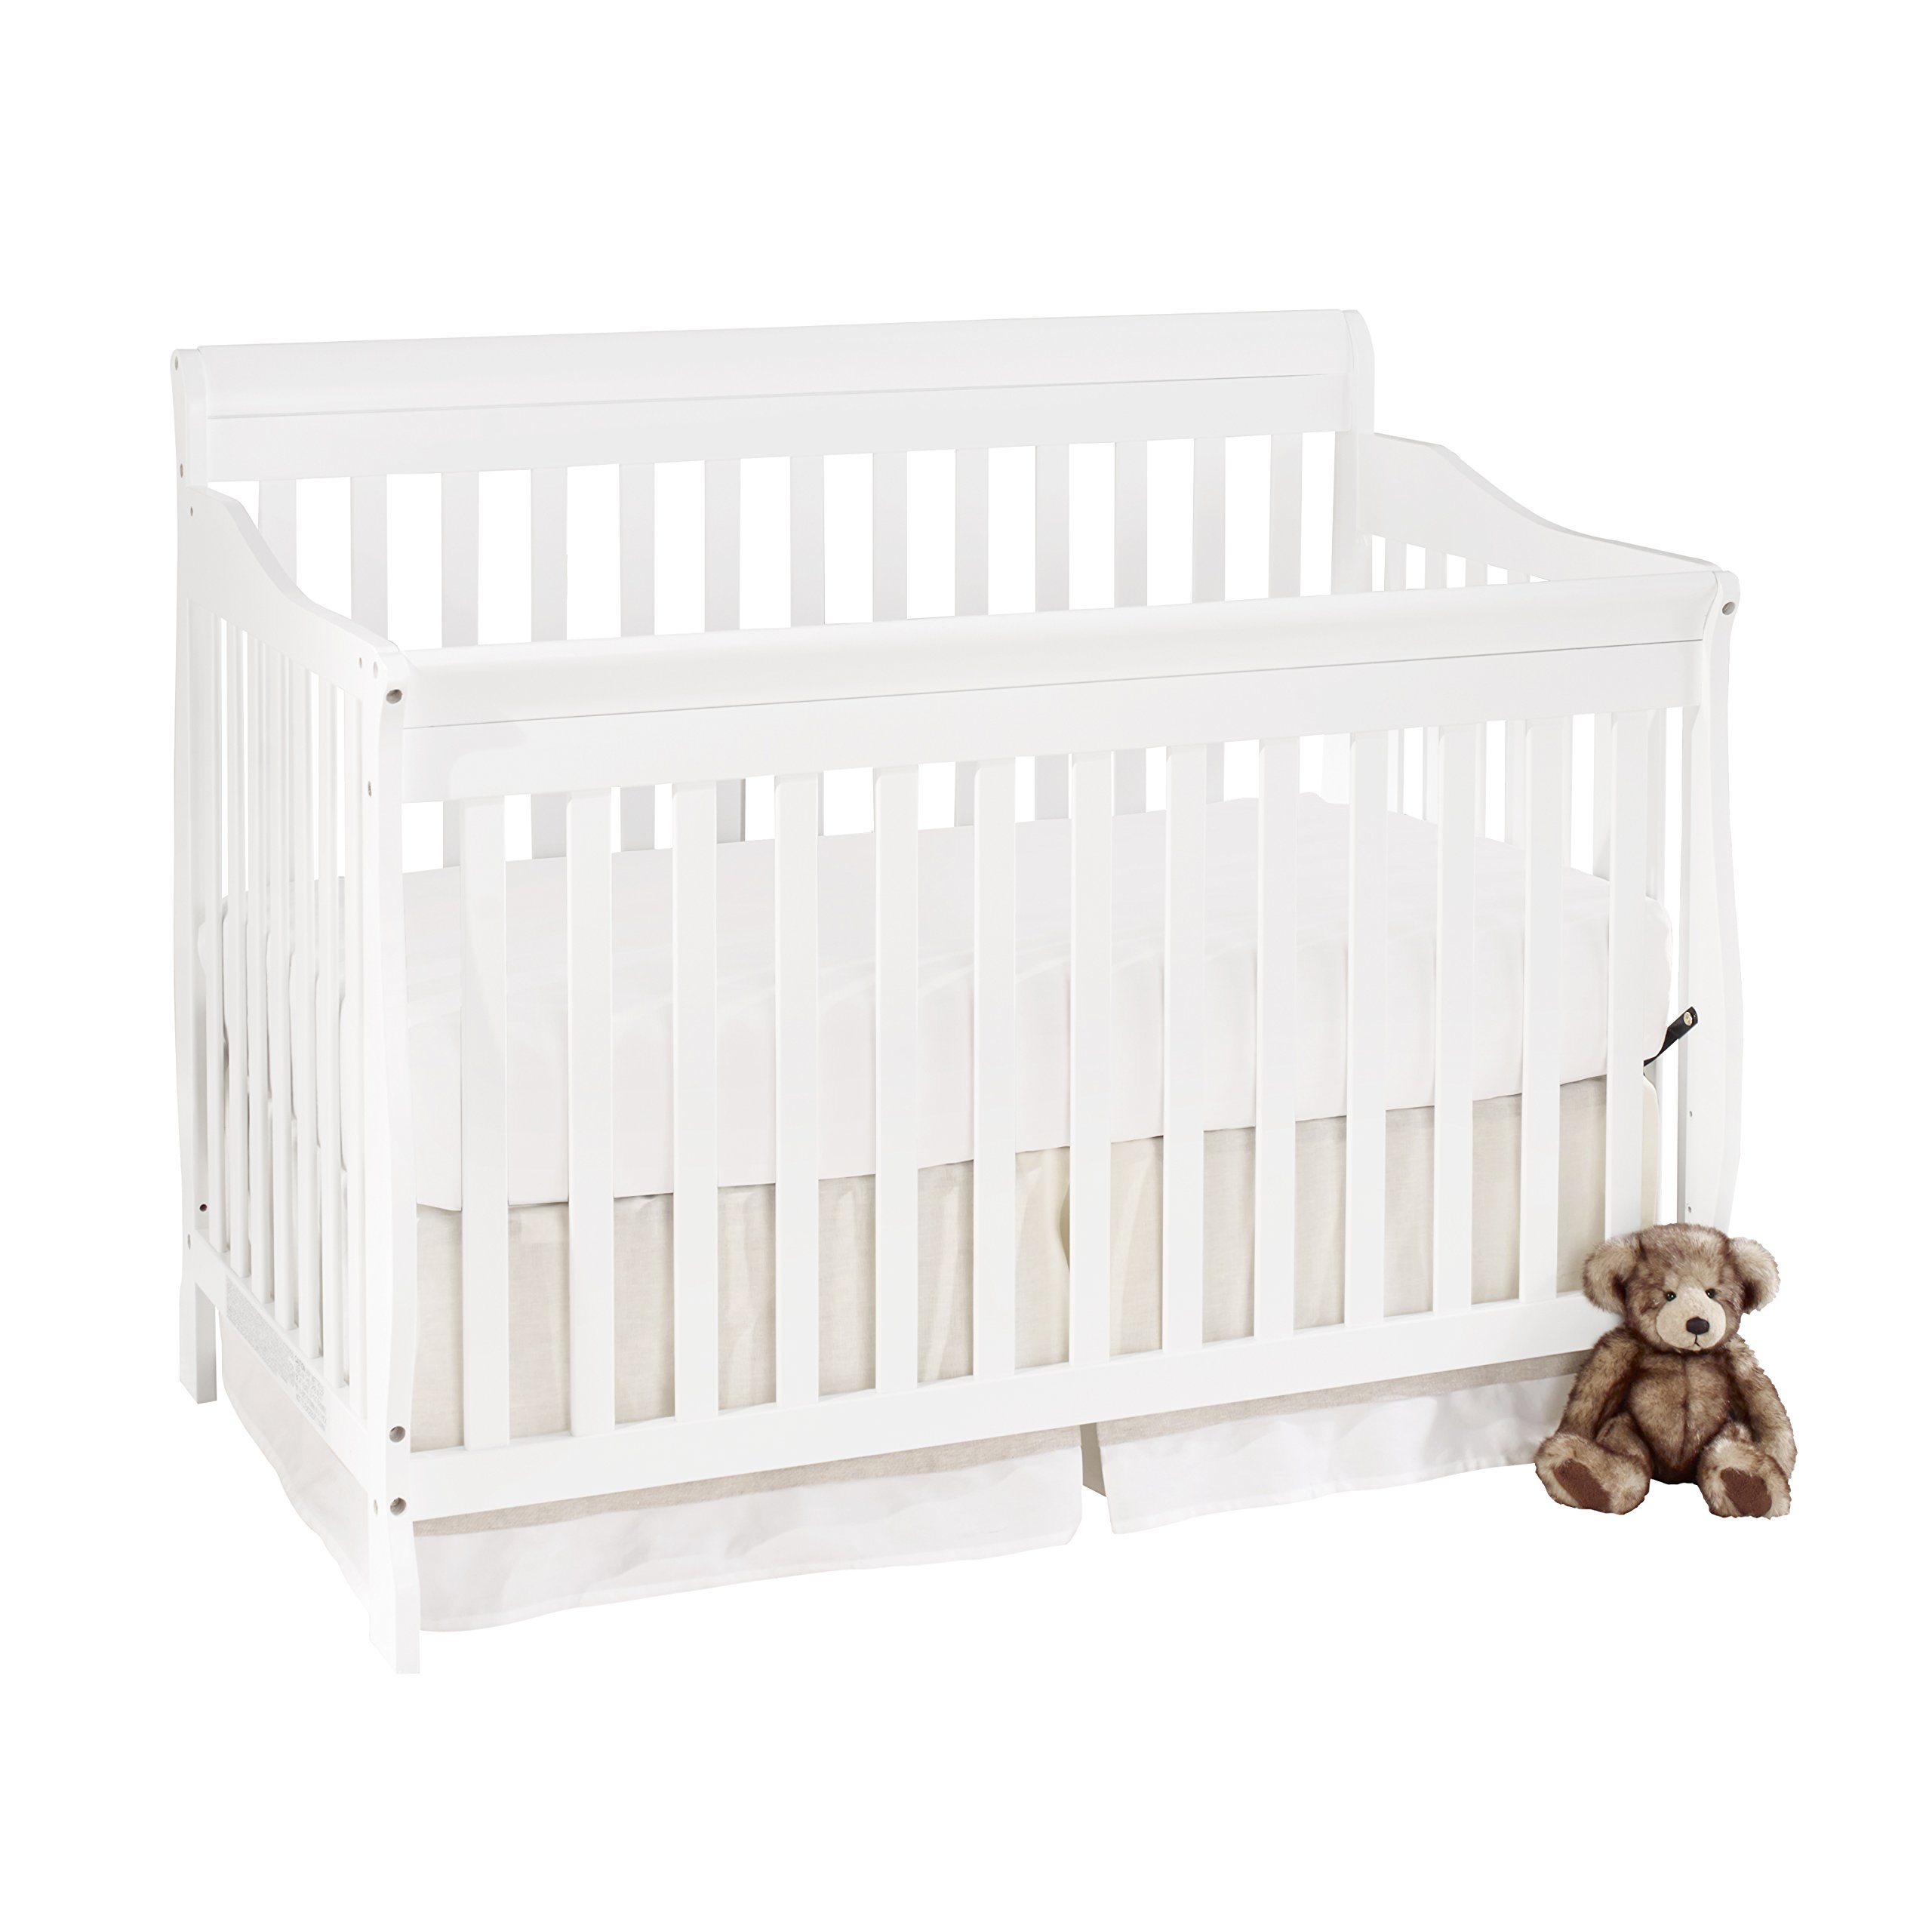 Big Oshi Stephanie 4-In-1 Convertible Crib – Modern, Unisex Wood Design for Boys or Girls – Adjustable Height, Low to High - Convertible to Crib and Day, Toddler or Twin Bed - With Hardware, White